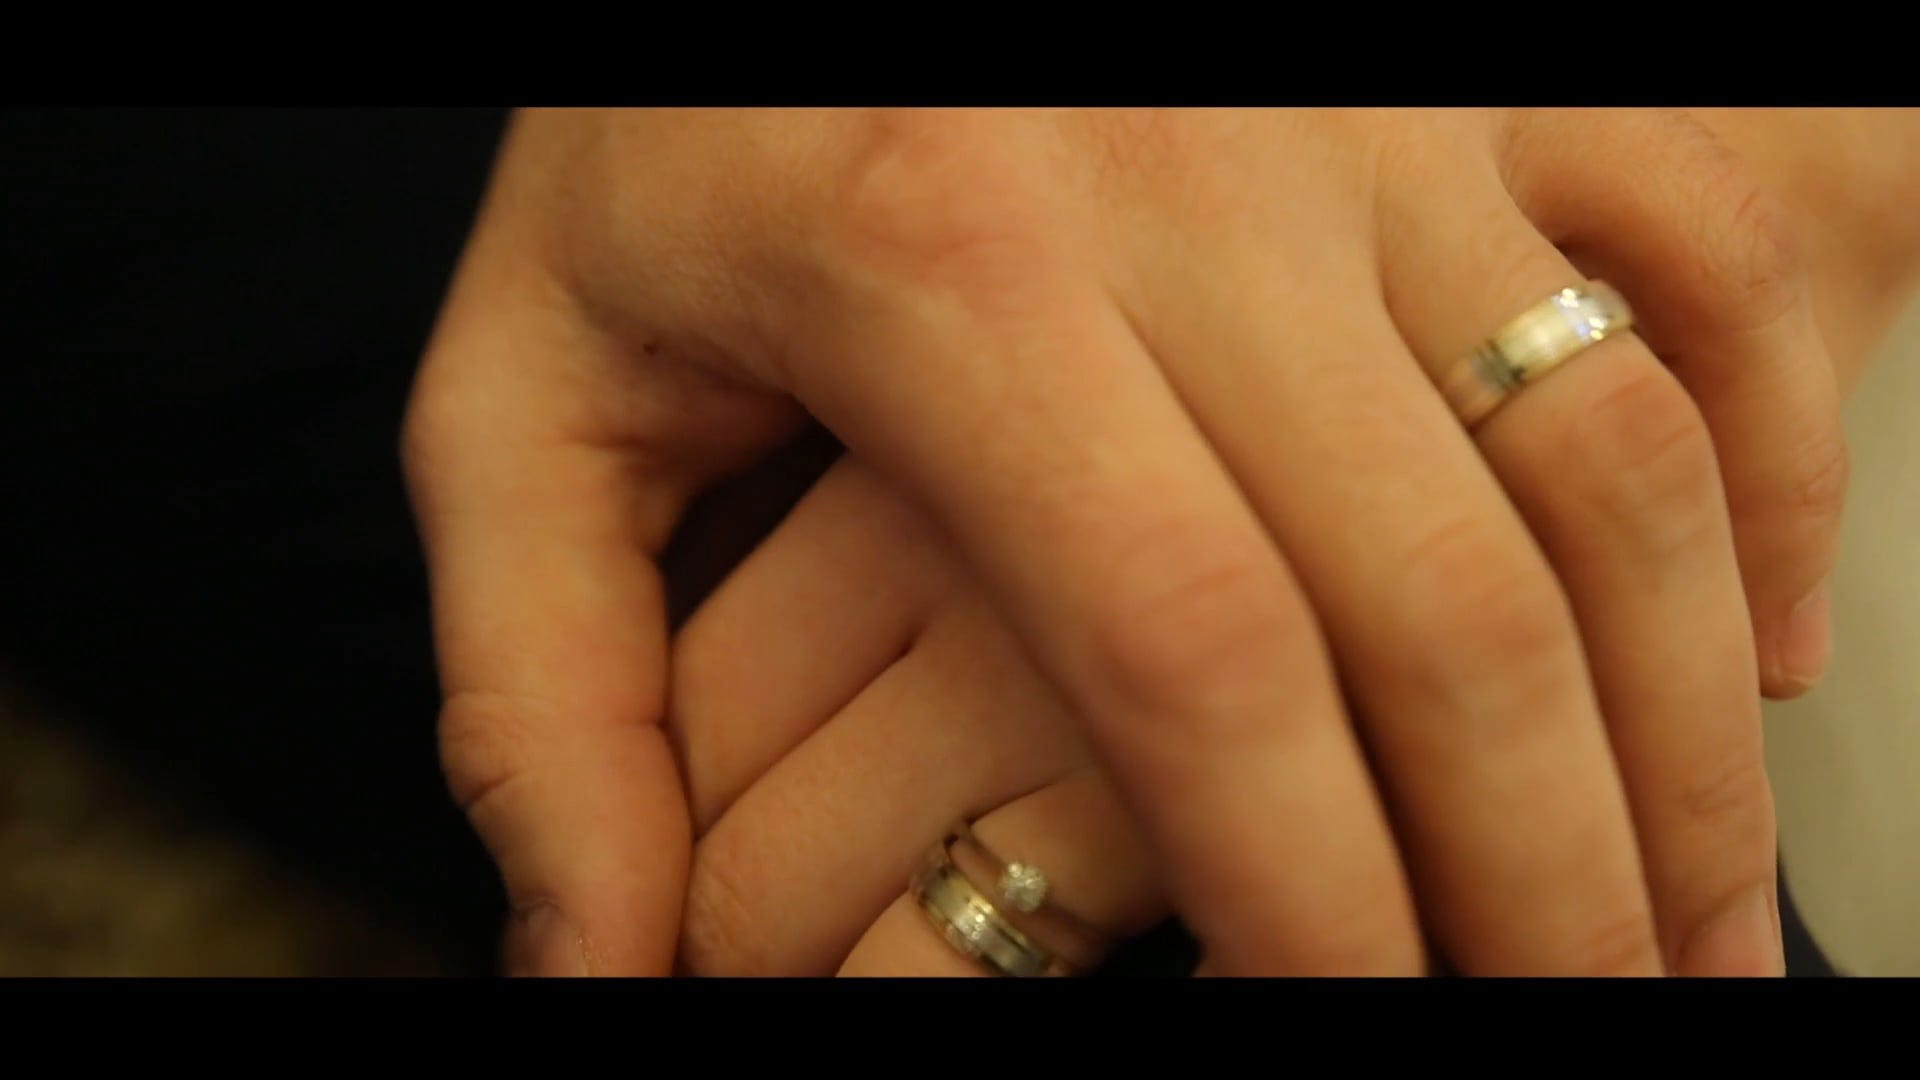 Close-Up Video Of Hands With Rings